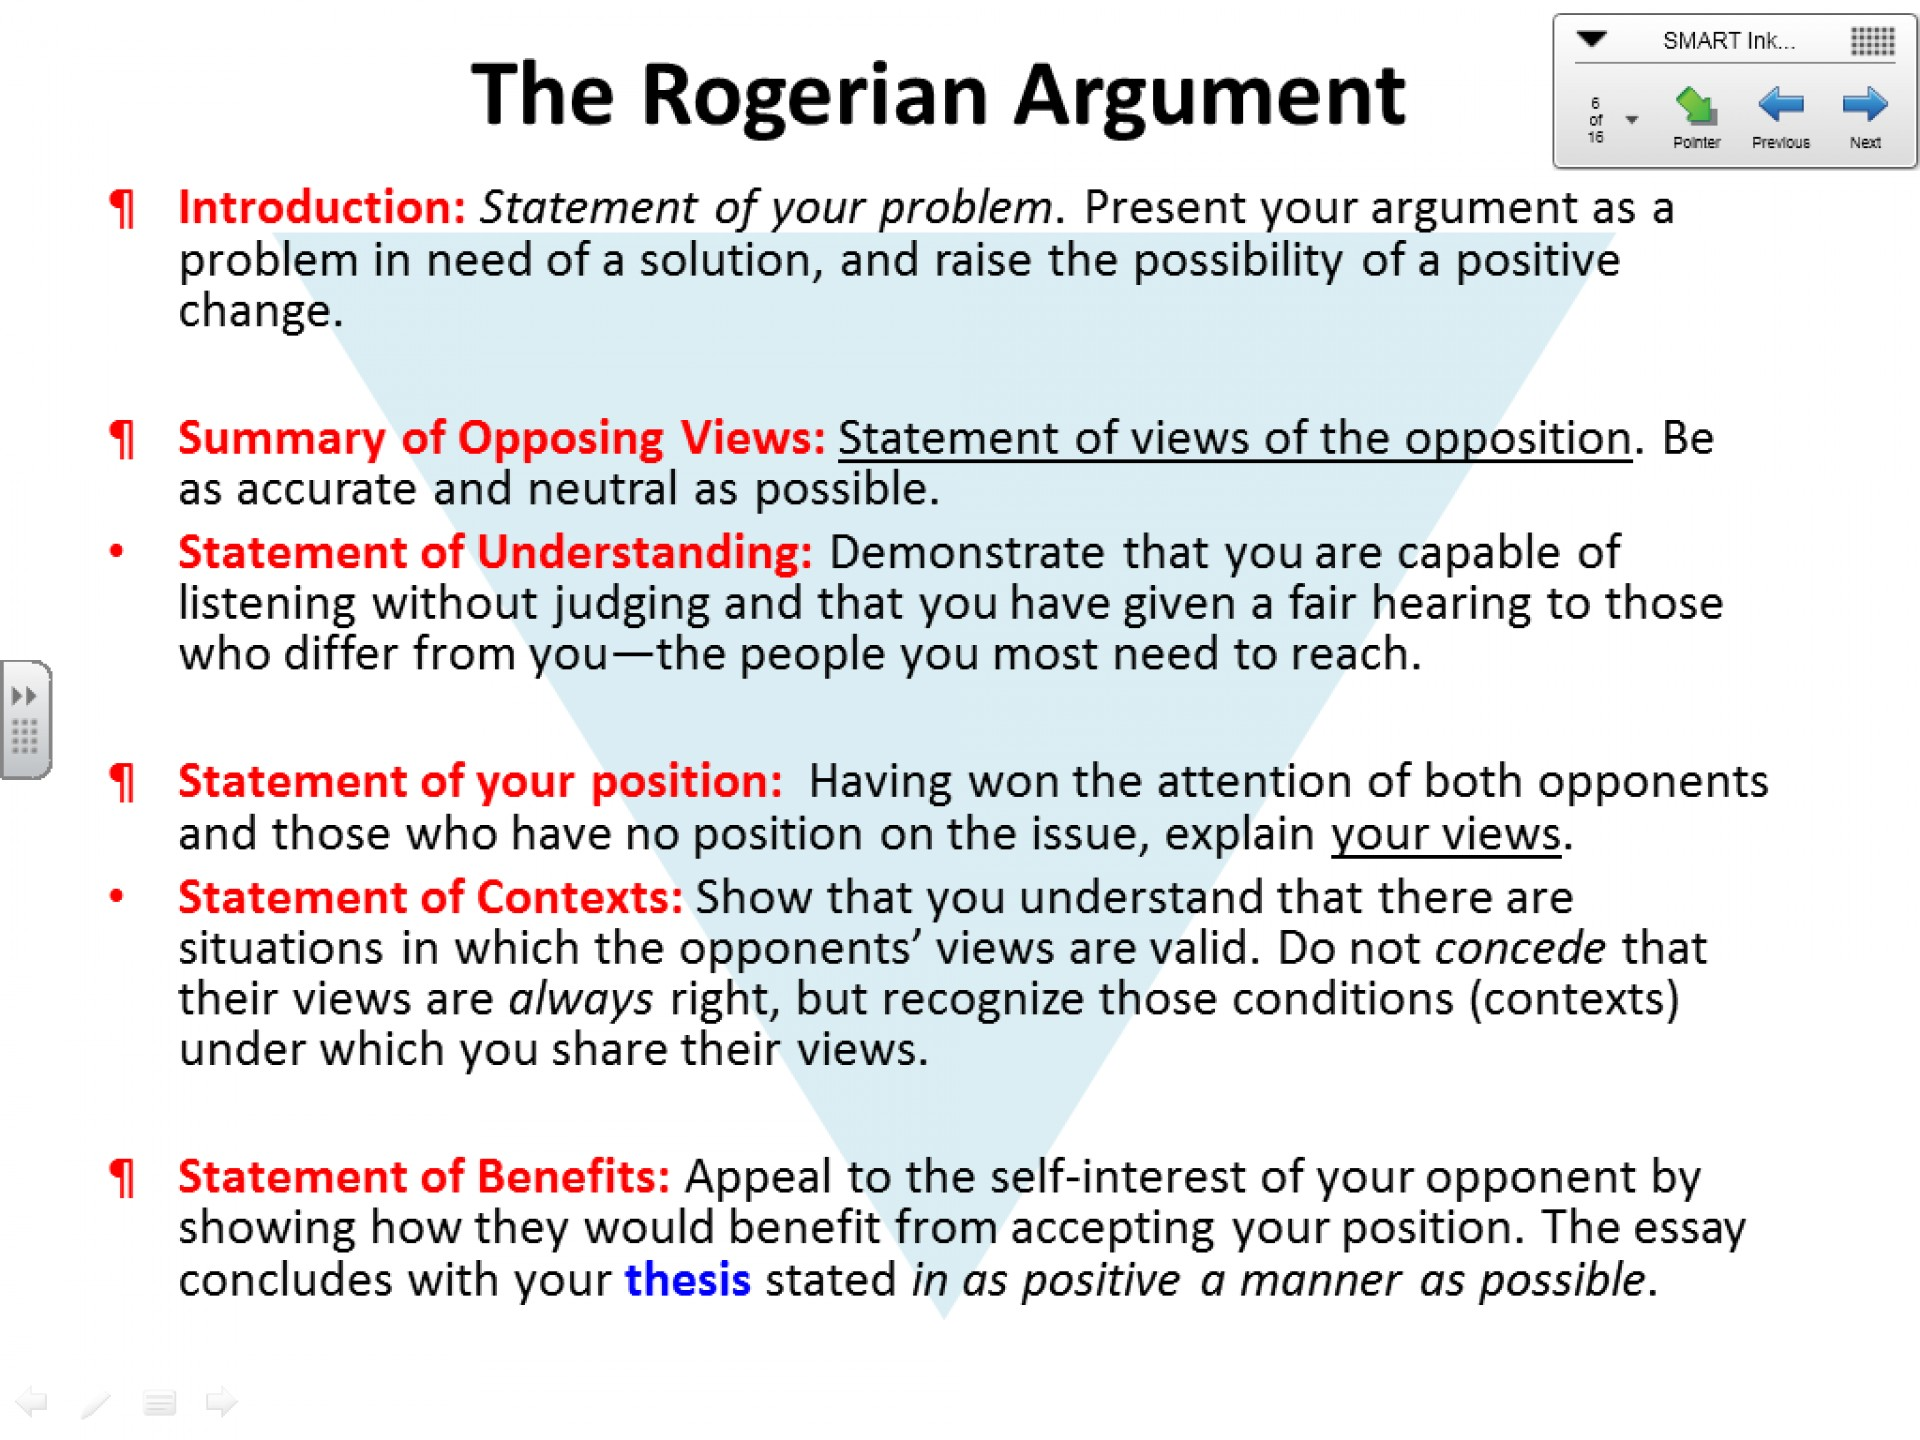 002 Essay Example1 Best Rogerian Argument Example Sentence Abortion Style Topics 1920